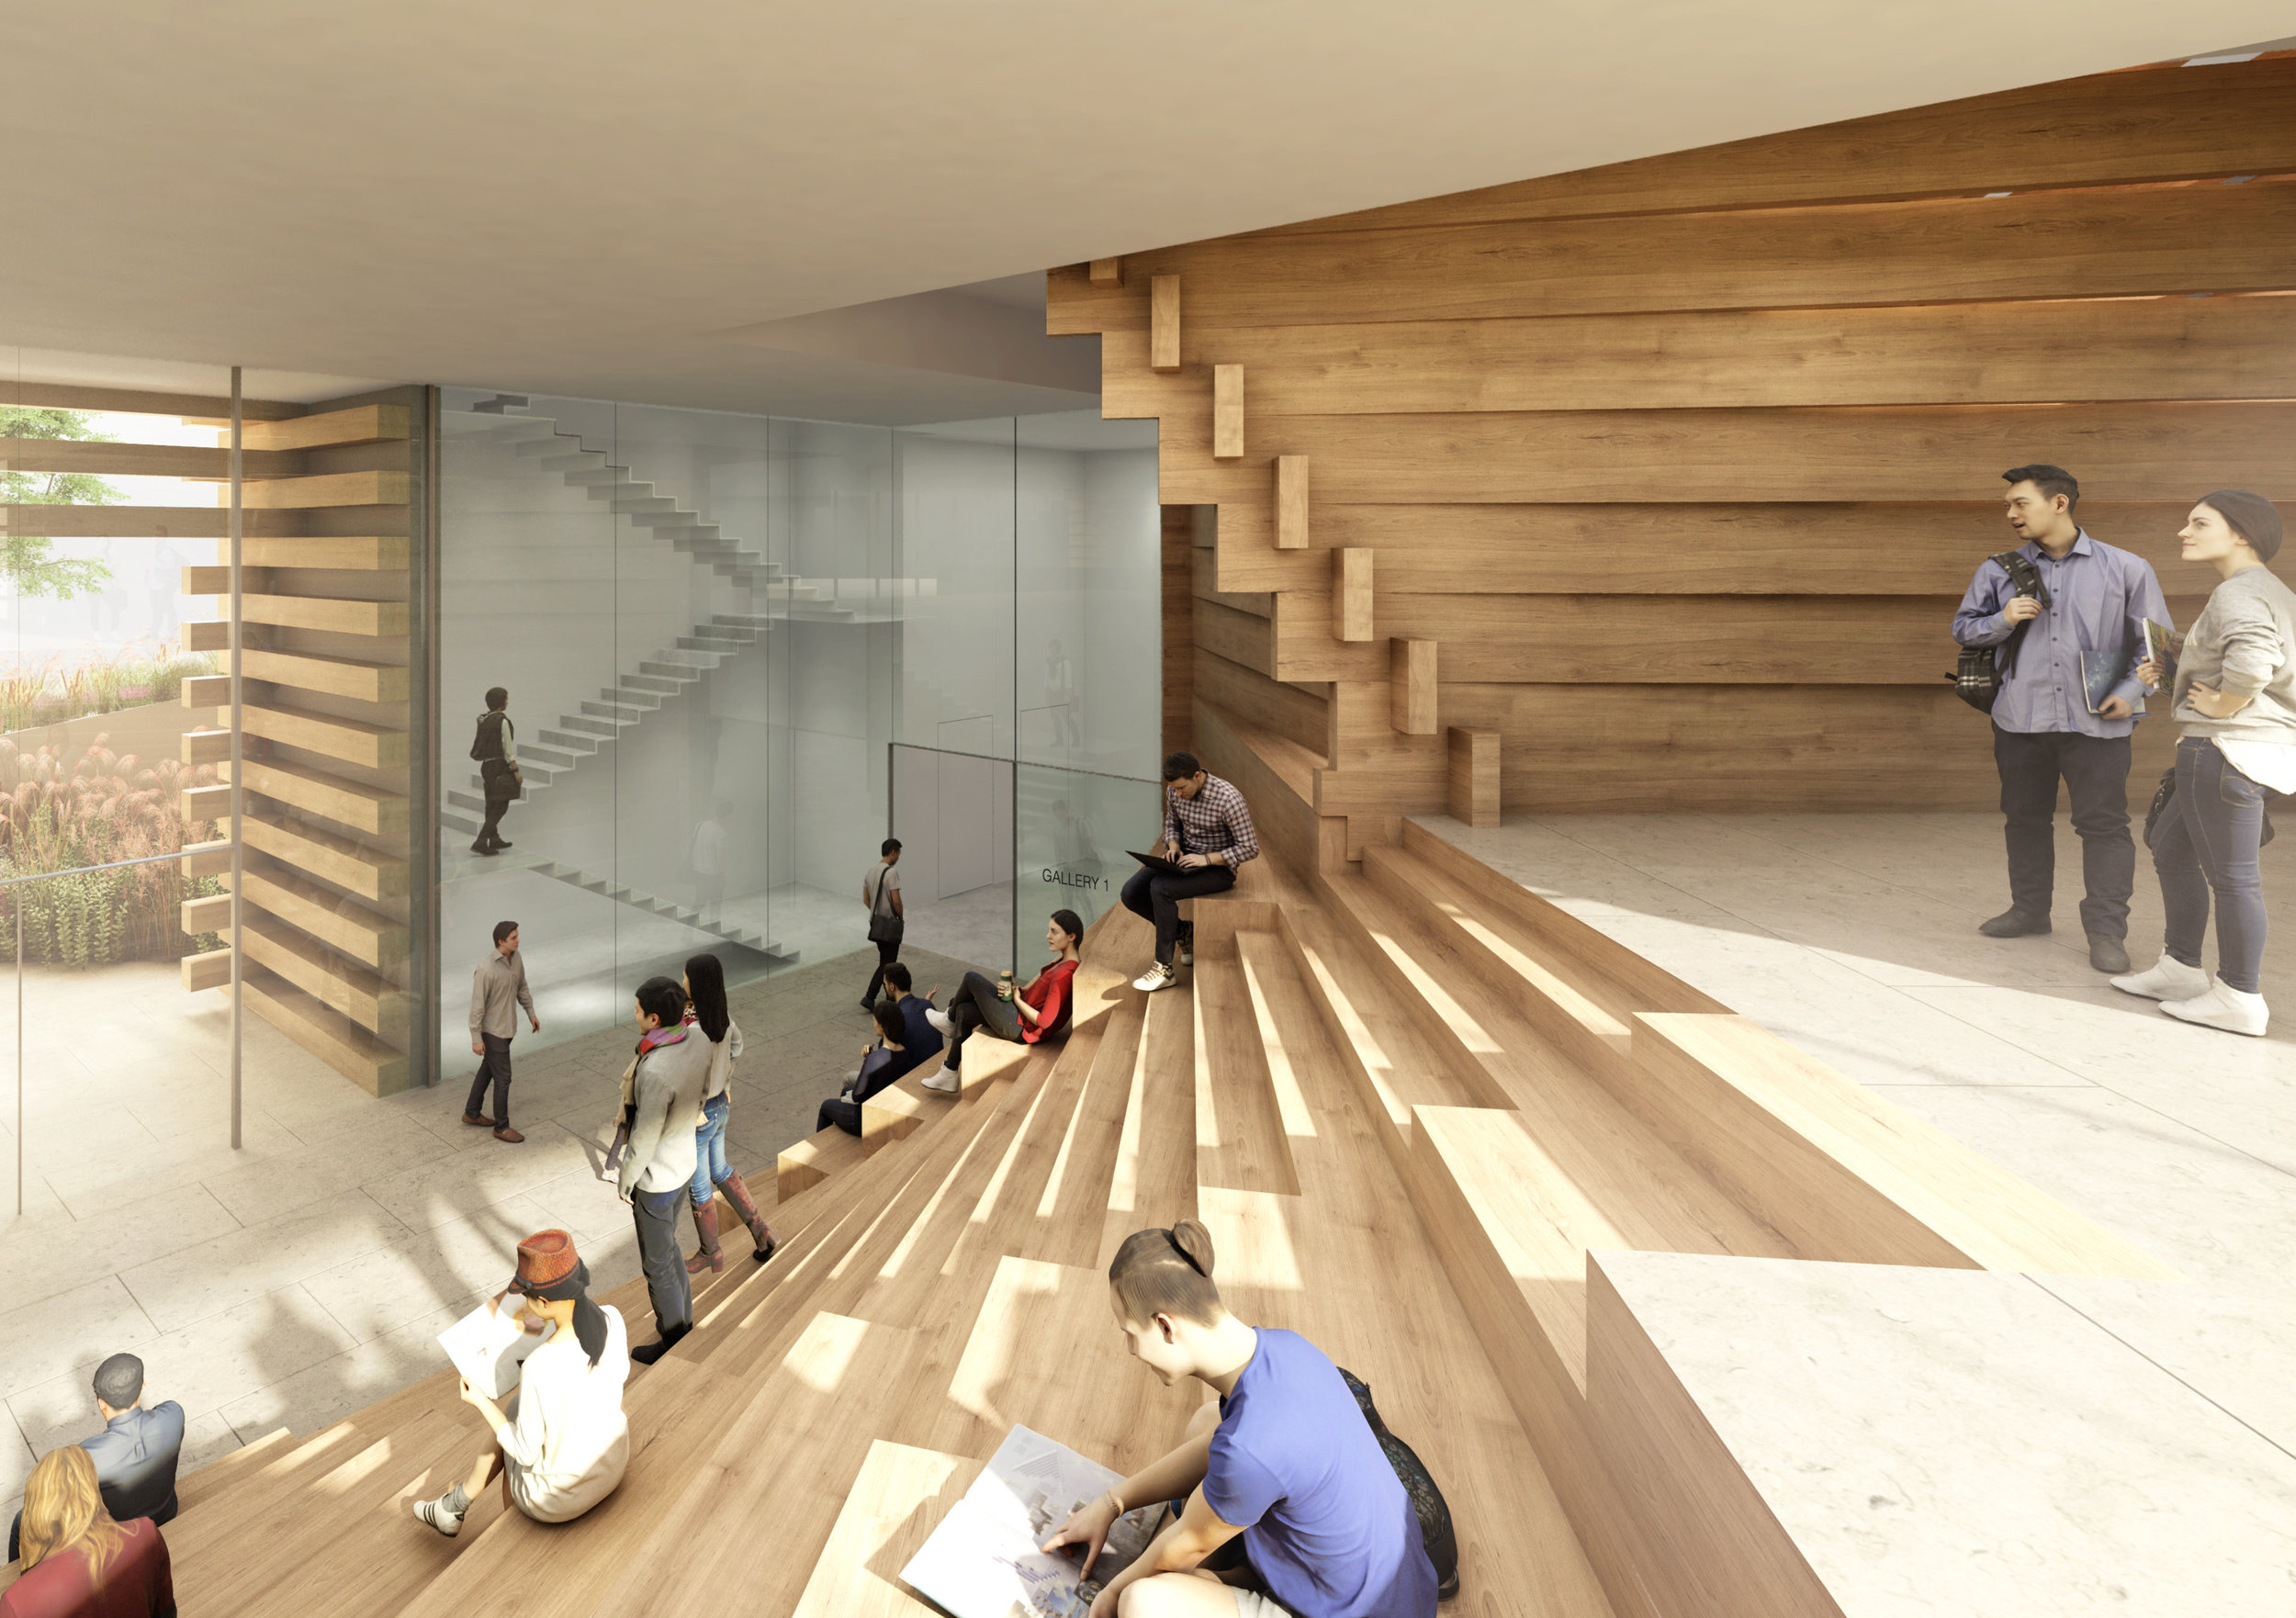 OMM, courtesy of Kengo Kuma and Associates(KKAA)